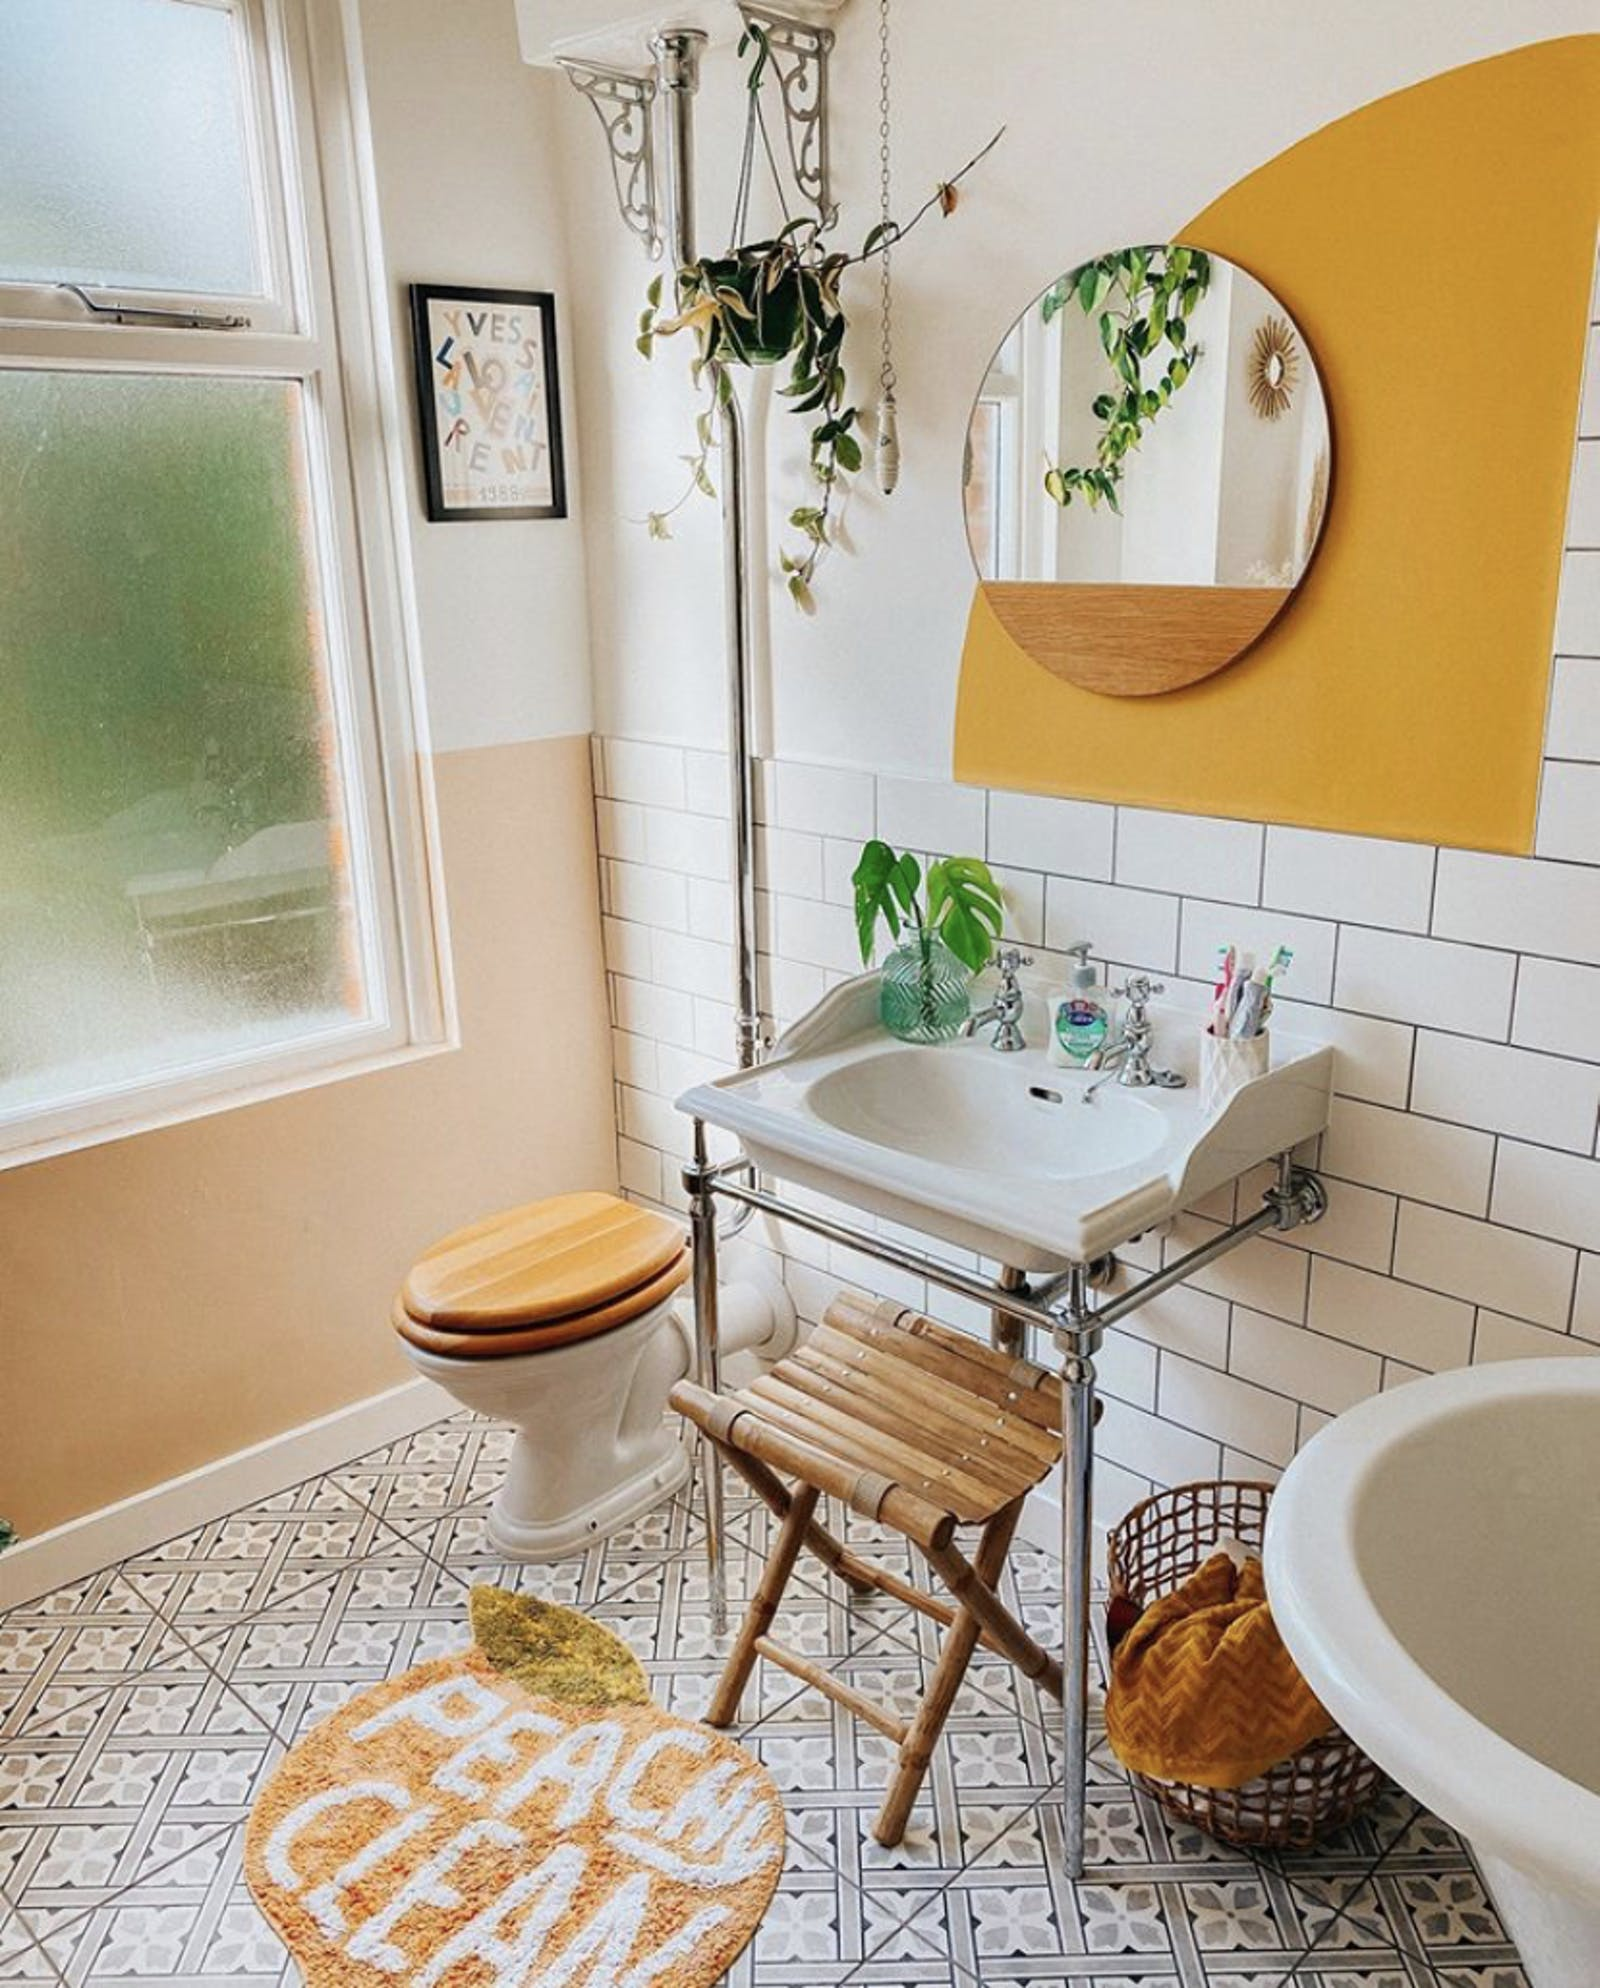 Bathroom with greenery and yellow accent wall detail